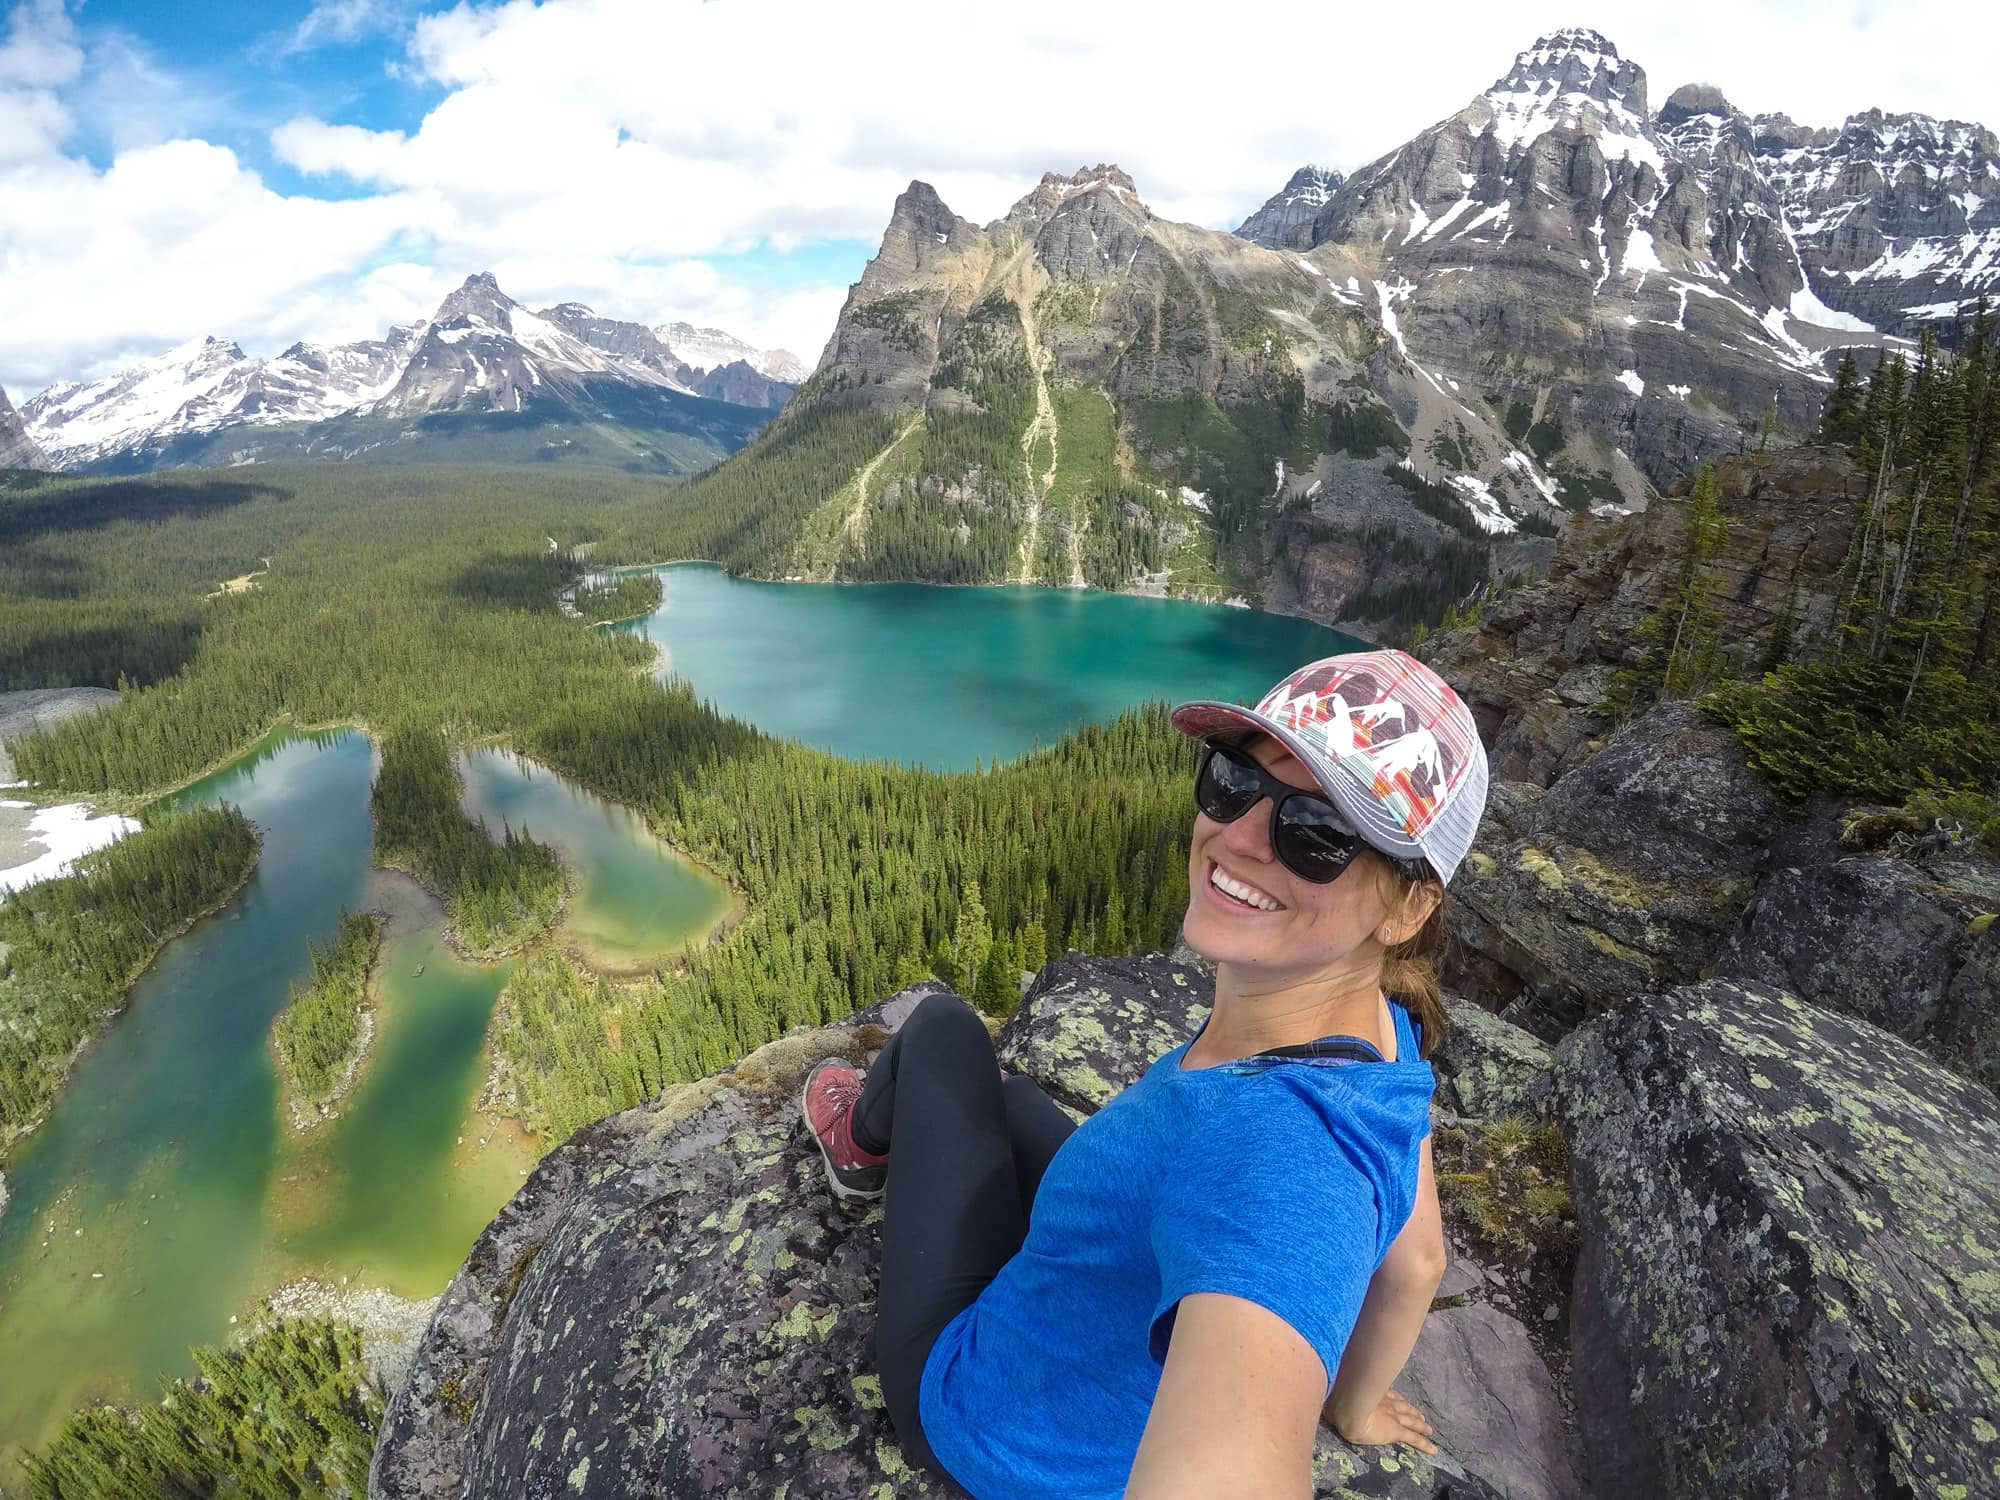 Opabin Prospect // Four days at Lake O'Hara was the highlight of my Canadian Rockies trip. Get my detailed hiking & camping guide to this British Columbia National Park.